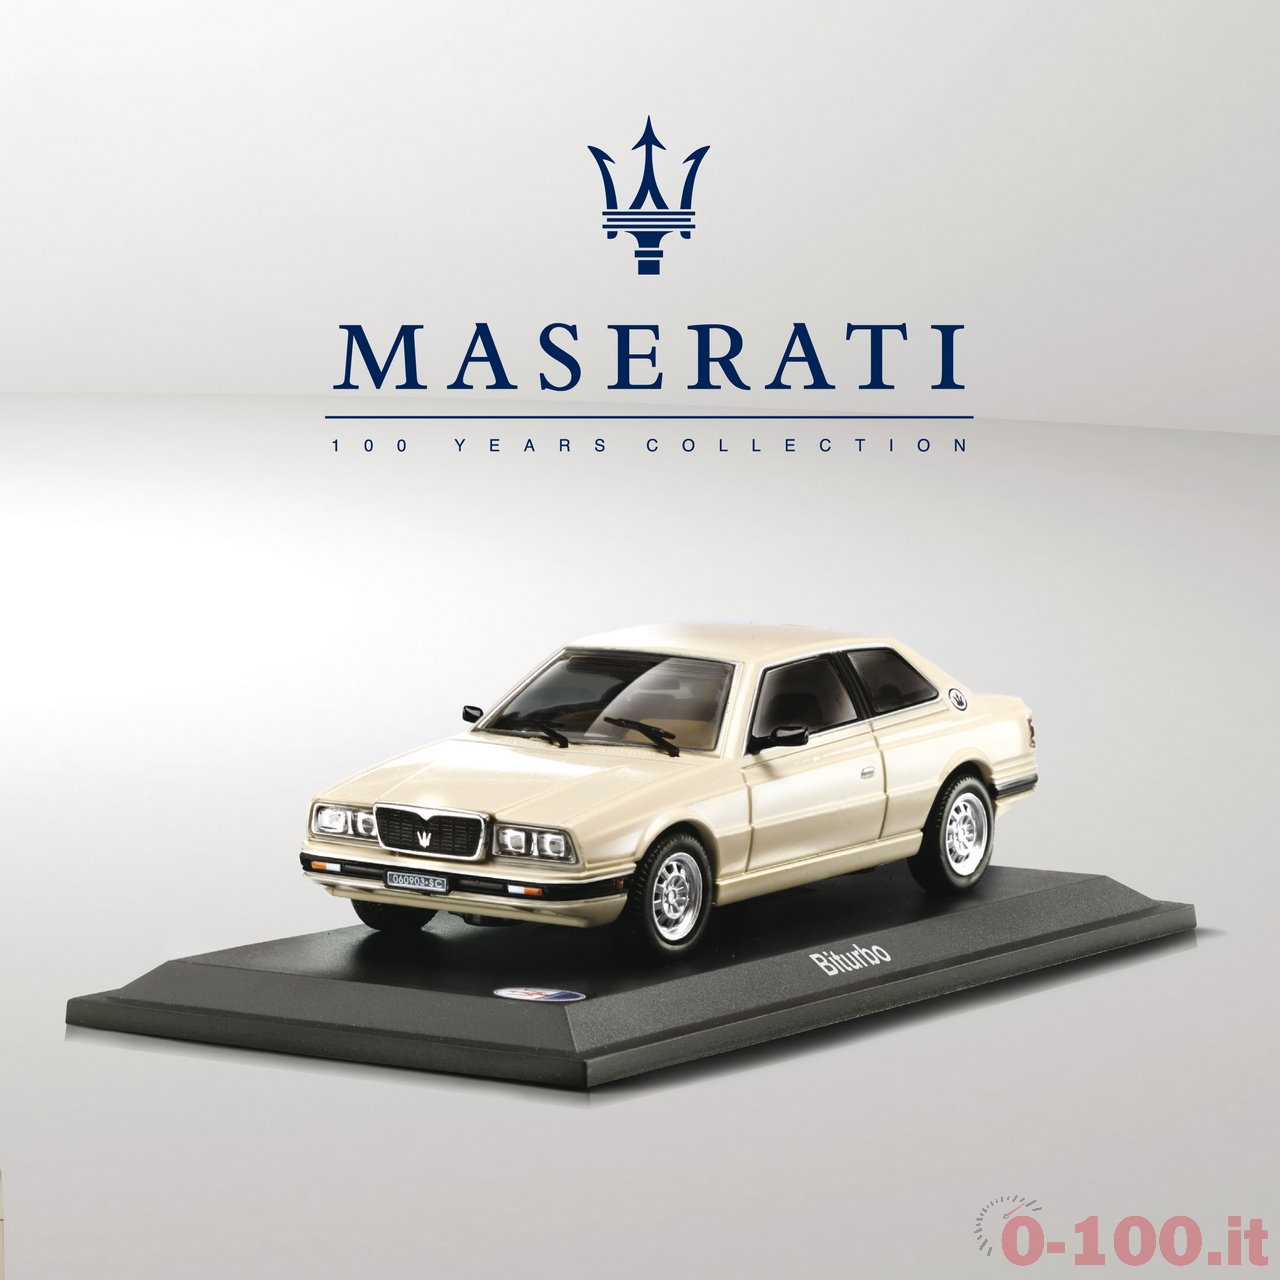 Maserati-100-Years-Collection-collateral_Gazzetta_prezzo_price0-100_7